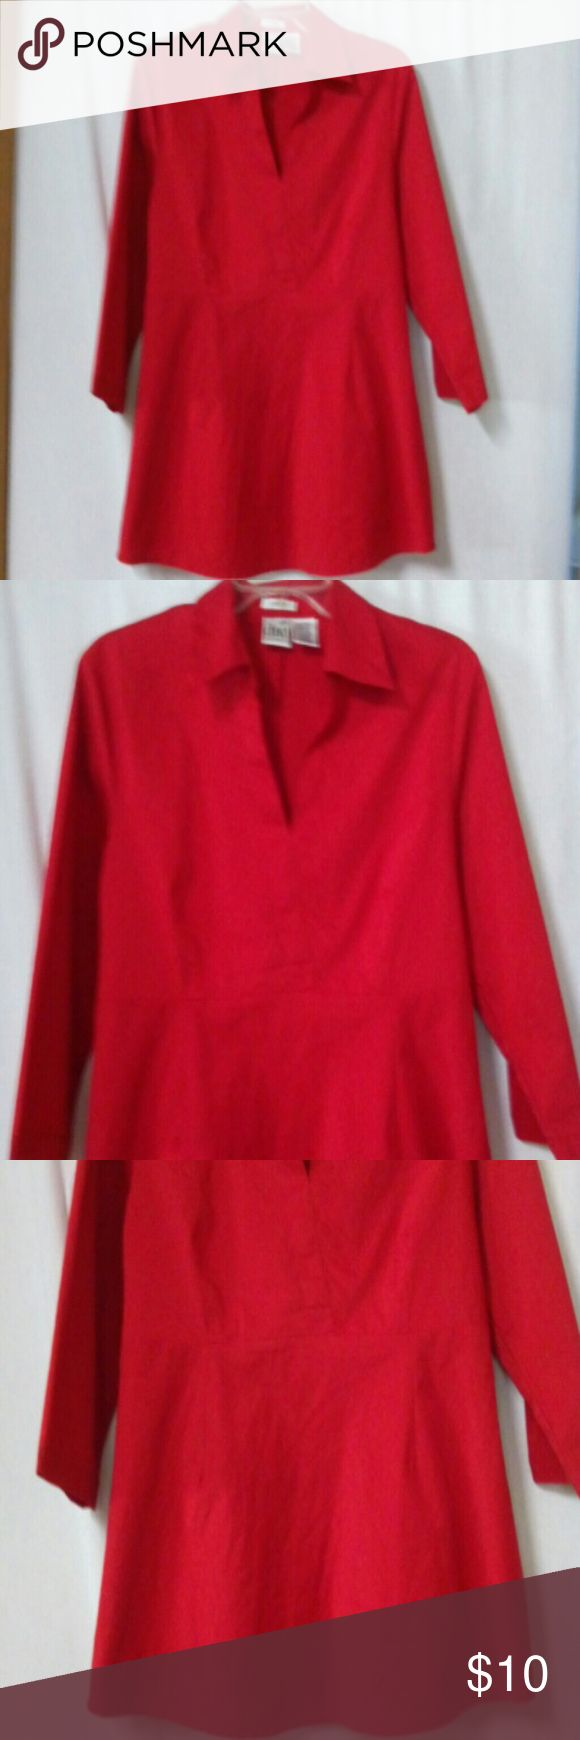 """Duo Maternity Women's Size Medium Shirt Top Barely worn, red, stretch, 3/4 sleeve, v neck, hidden zipper under the left arm, ties in the back, cotton, polyester and spandex, chest 42"""", length 28"""" Duo Maternity Tops"""